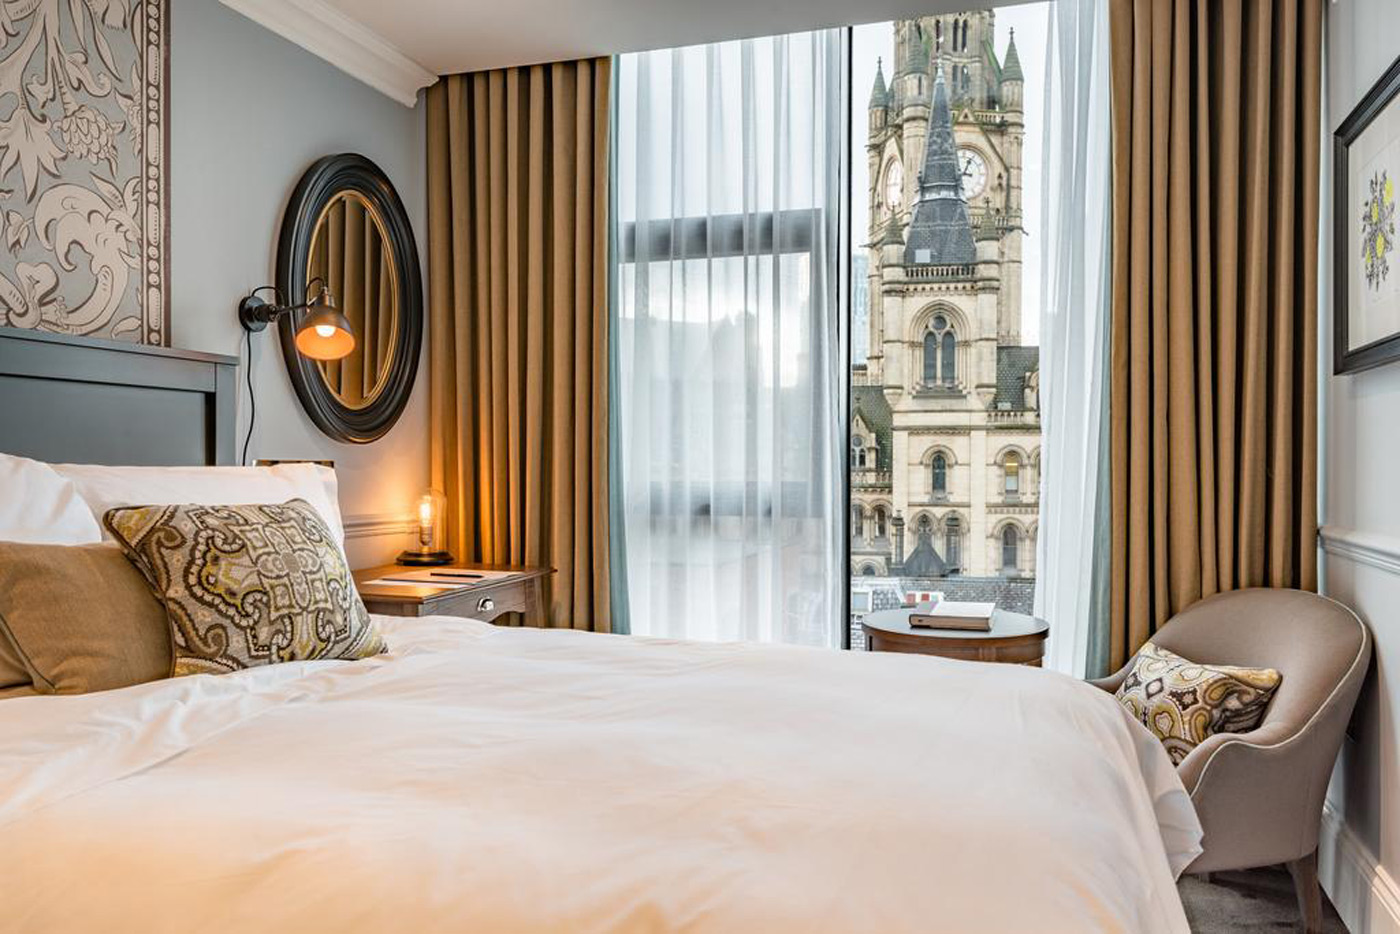 Manchester Hotels Kingstreet Townhouse Eclectic hotels room